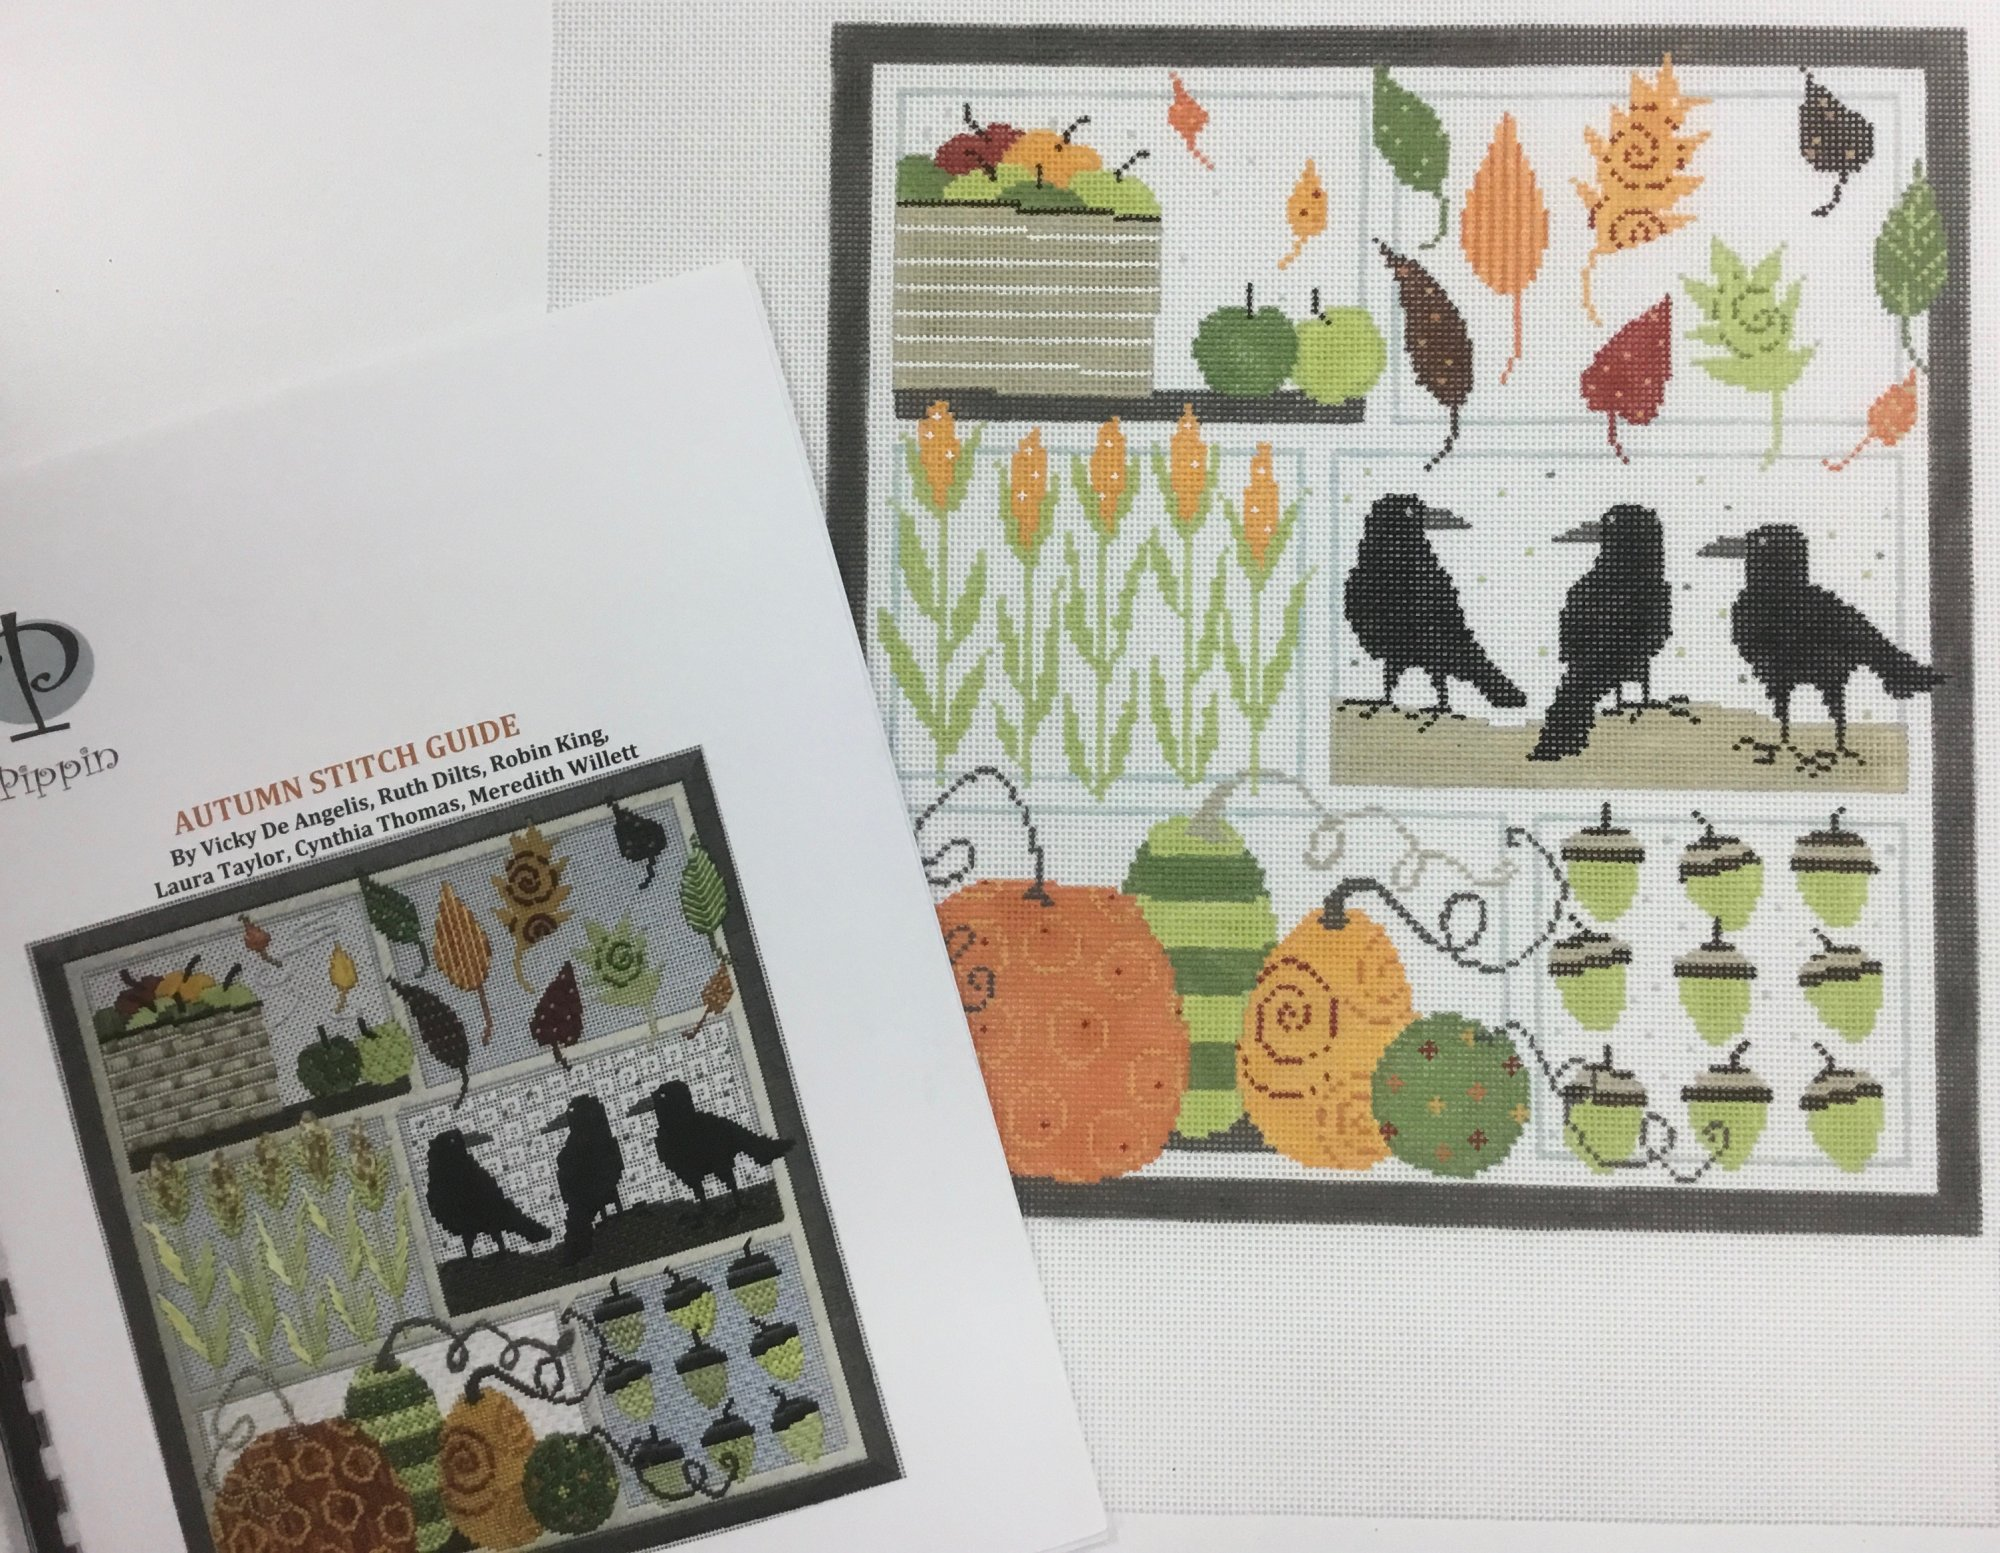 Autumn Sampler with Stitch Guide,18 ct.,9 1/2x10